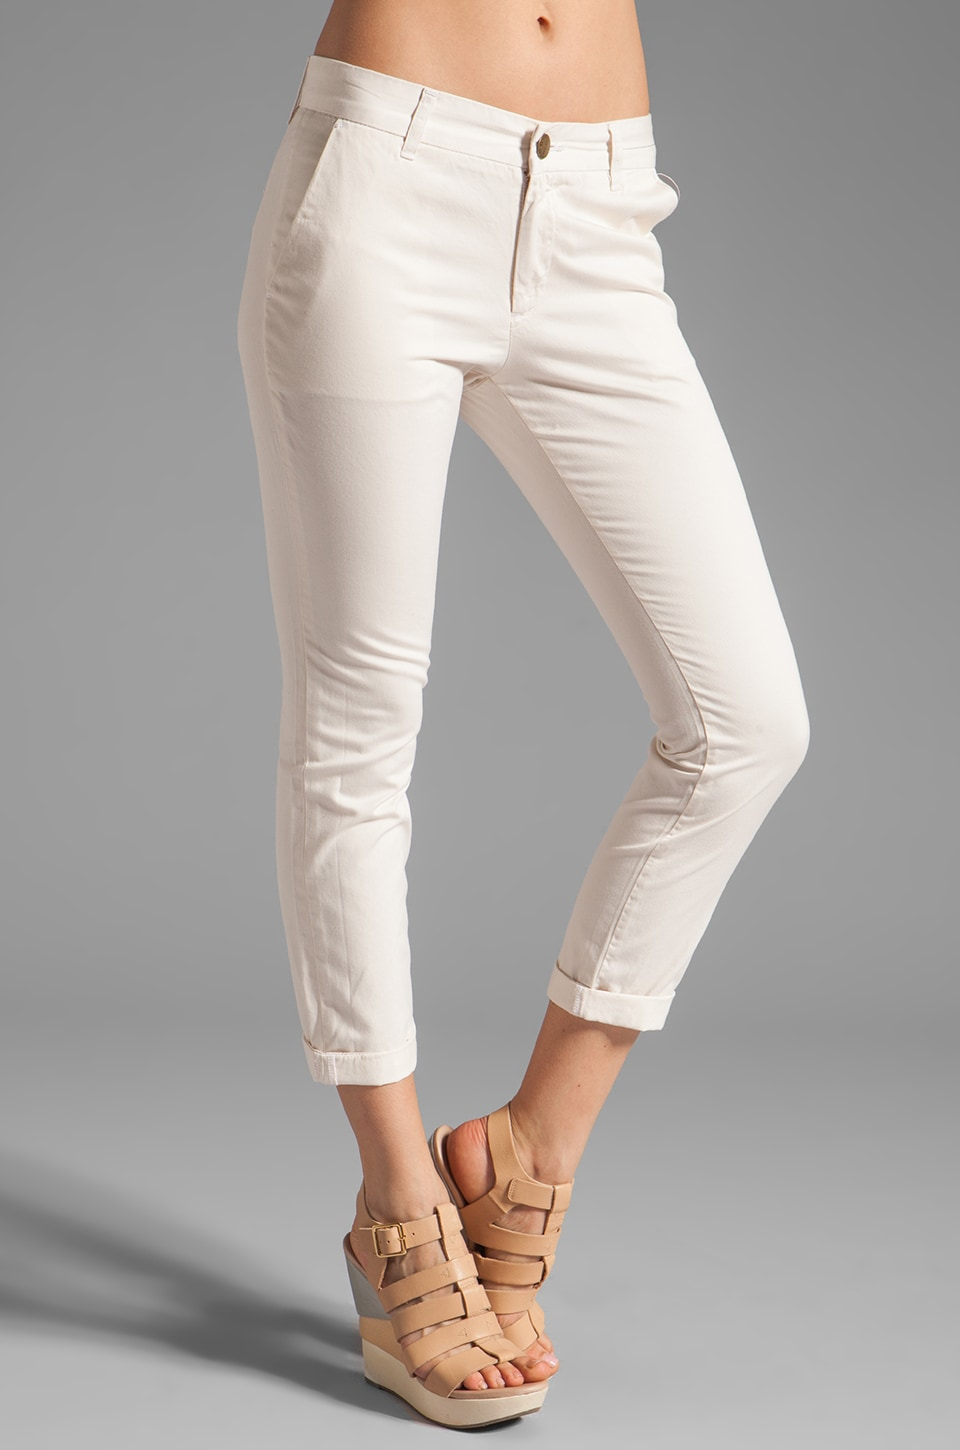 Current/Elliott The Buddy Trouser in Dirty White